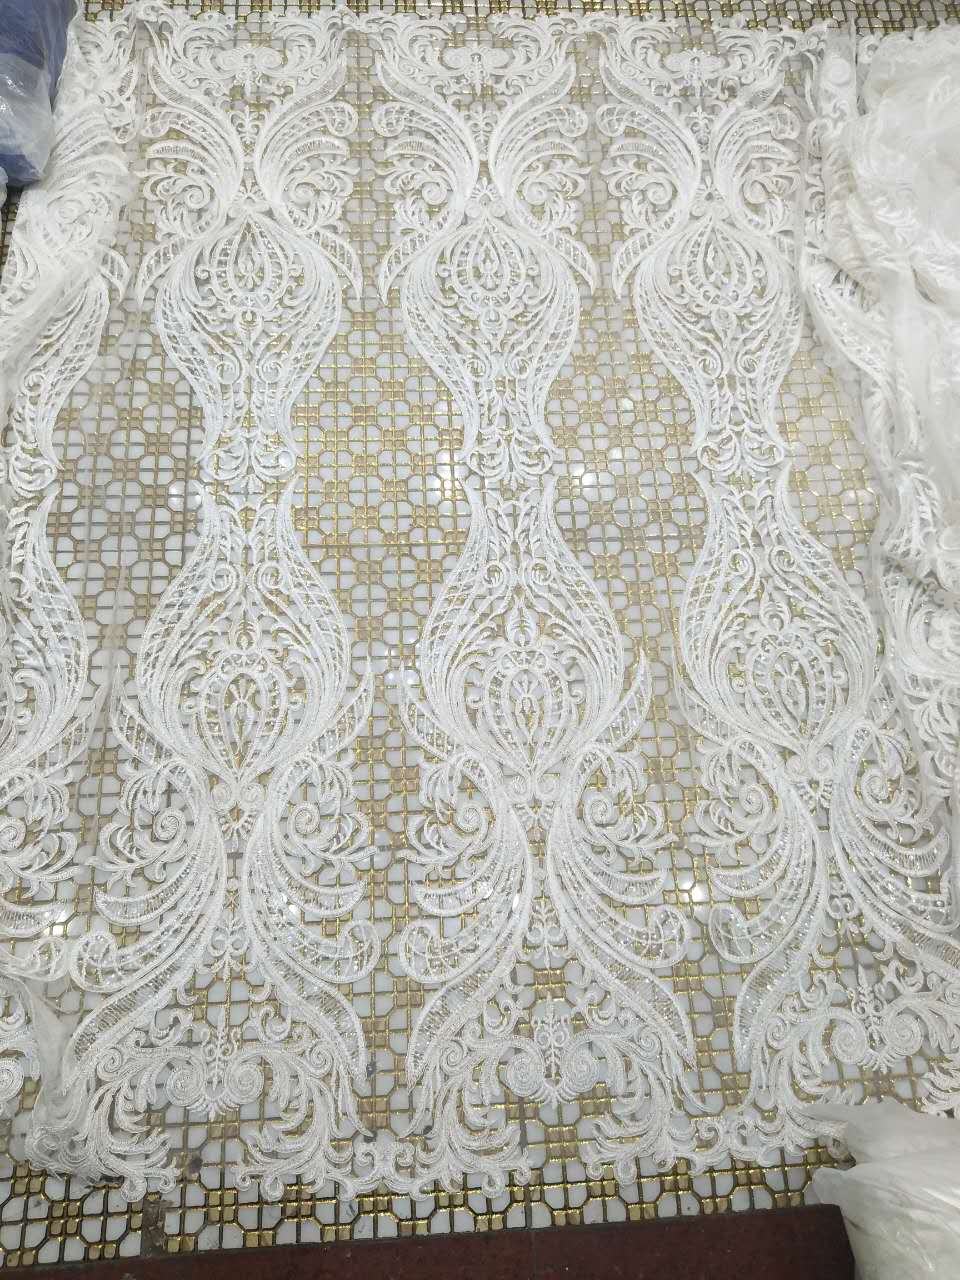 Free shipping High Quality guipure lace fabric 2017 African Voile Swiss Lace Fabric For Wedding dress